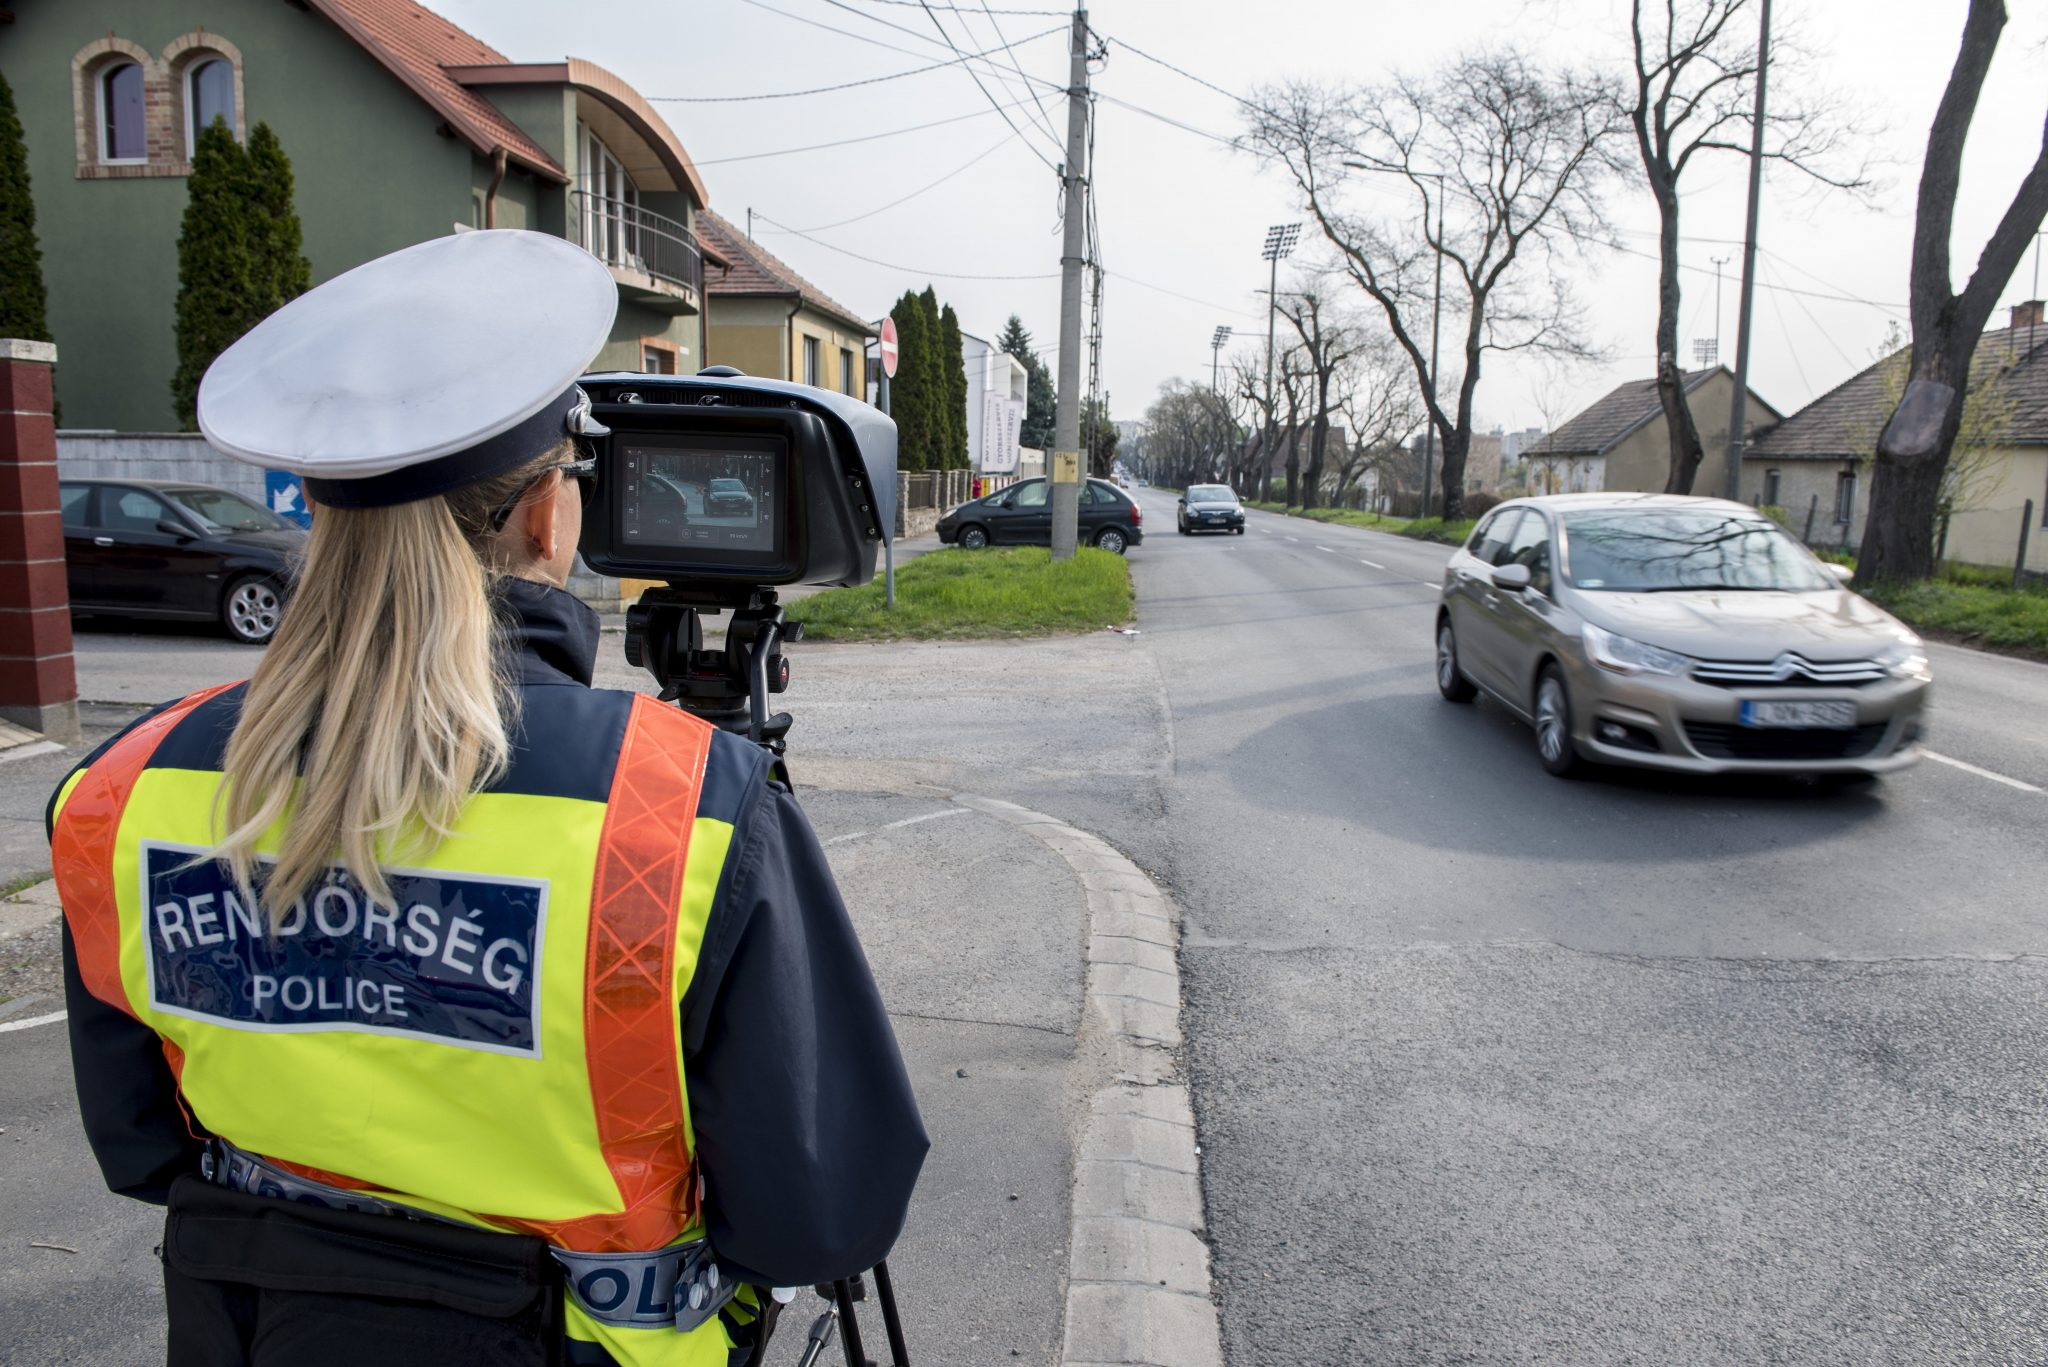 Police Impose Record Amount of Roadside Fines in First Half of the Year post's picture